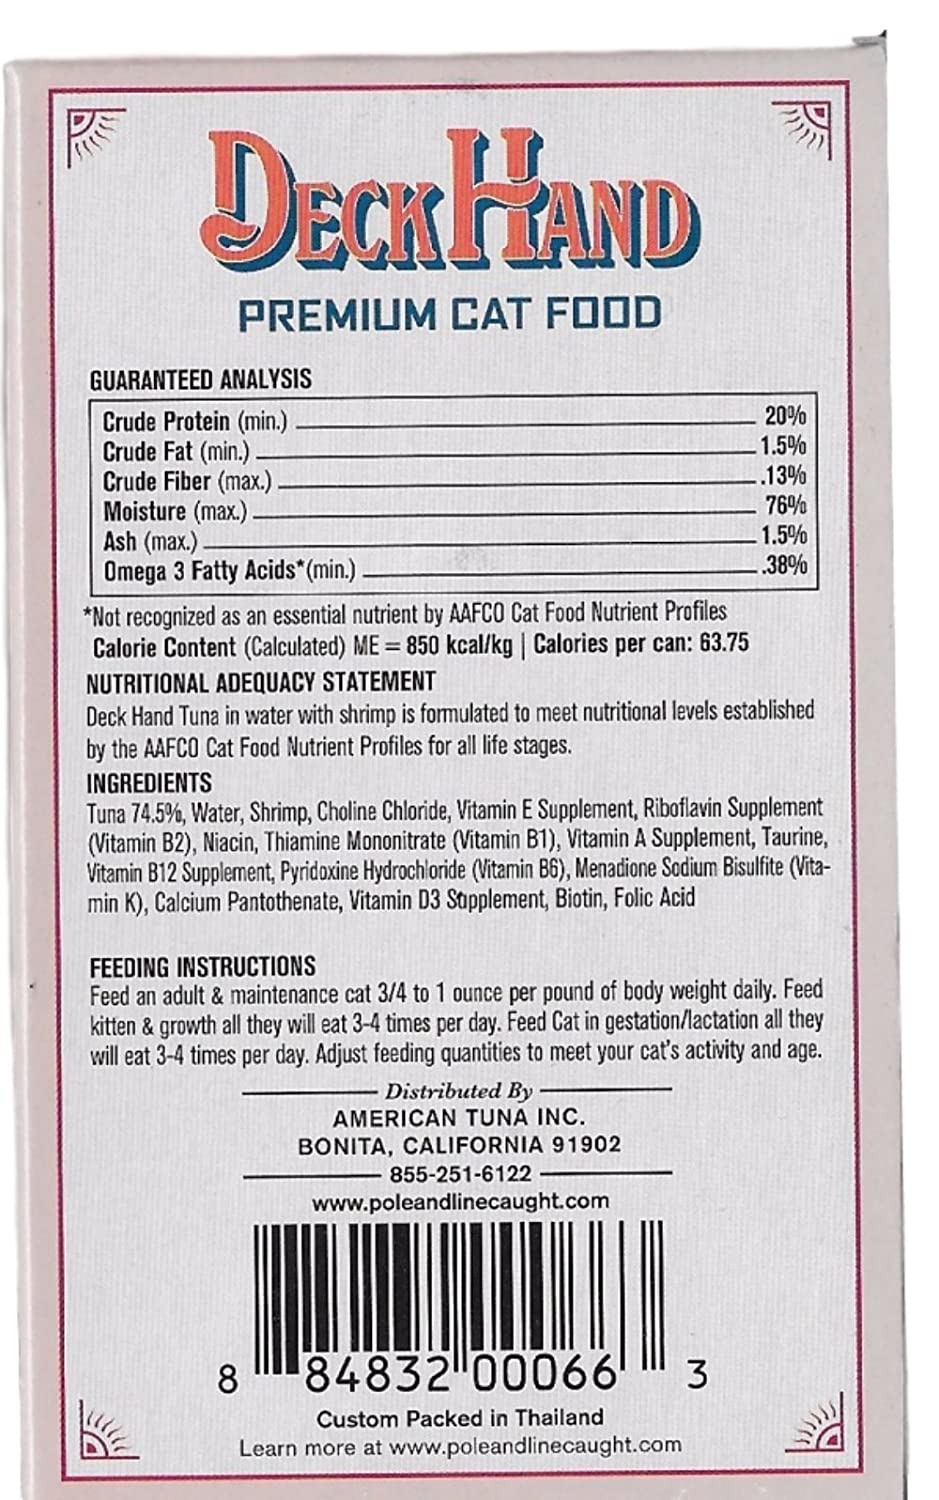 Deck Hand Premium Cat Food  Uniquely Pole & Line Caught Wet Cat Food   Variety 9 Pack Canned Cat Food with 3 Tantalizing Flavors  Pure Tuna,  Salmon,